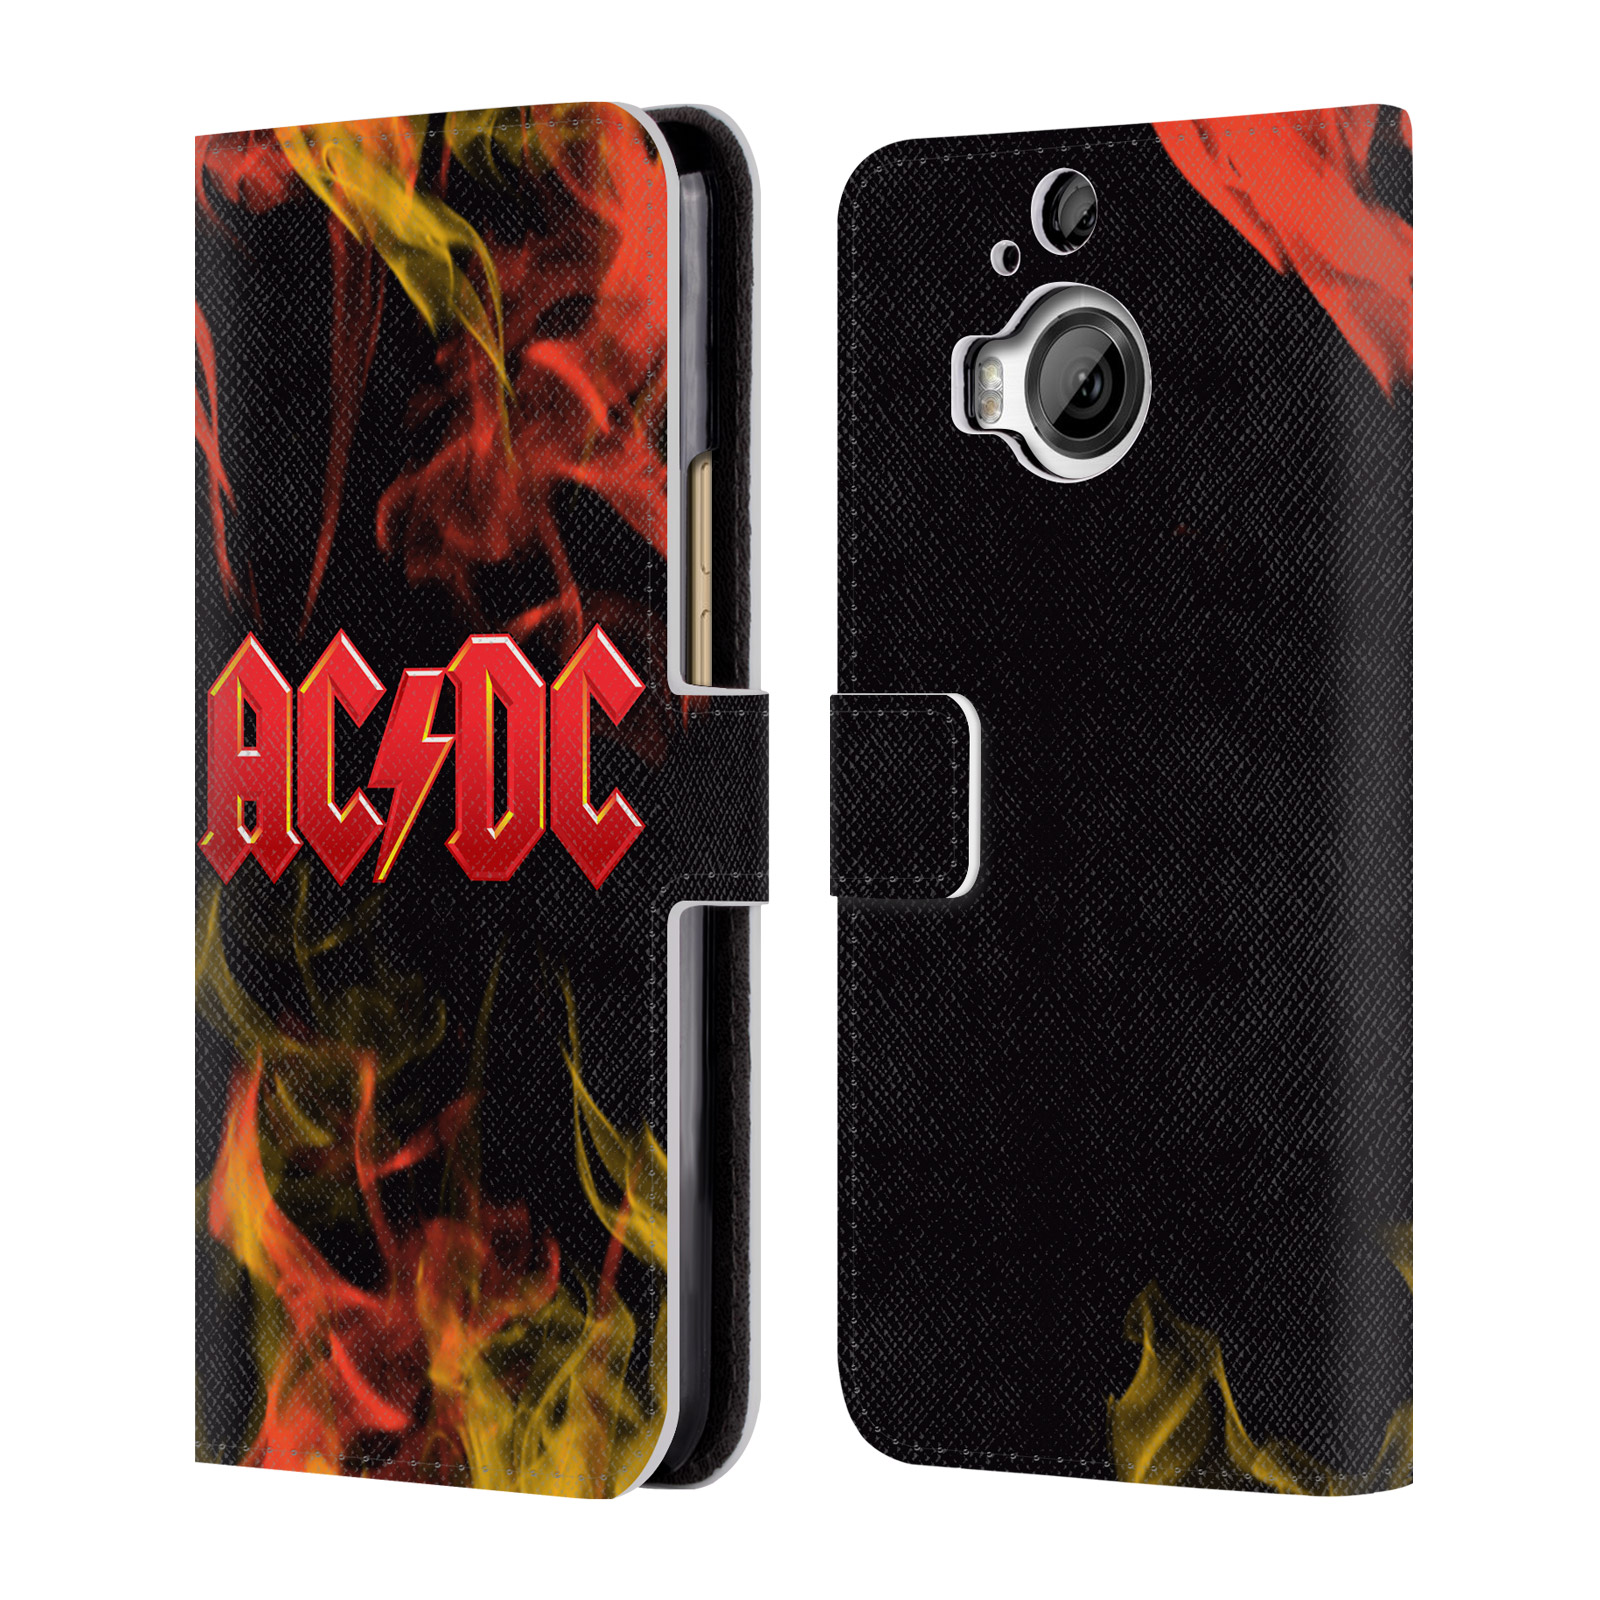 OFFICIAL AC/DC ACDC LOGO LEATHER BOOK WALLET CASE COVER FOR HTC PHONES 1